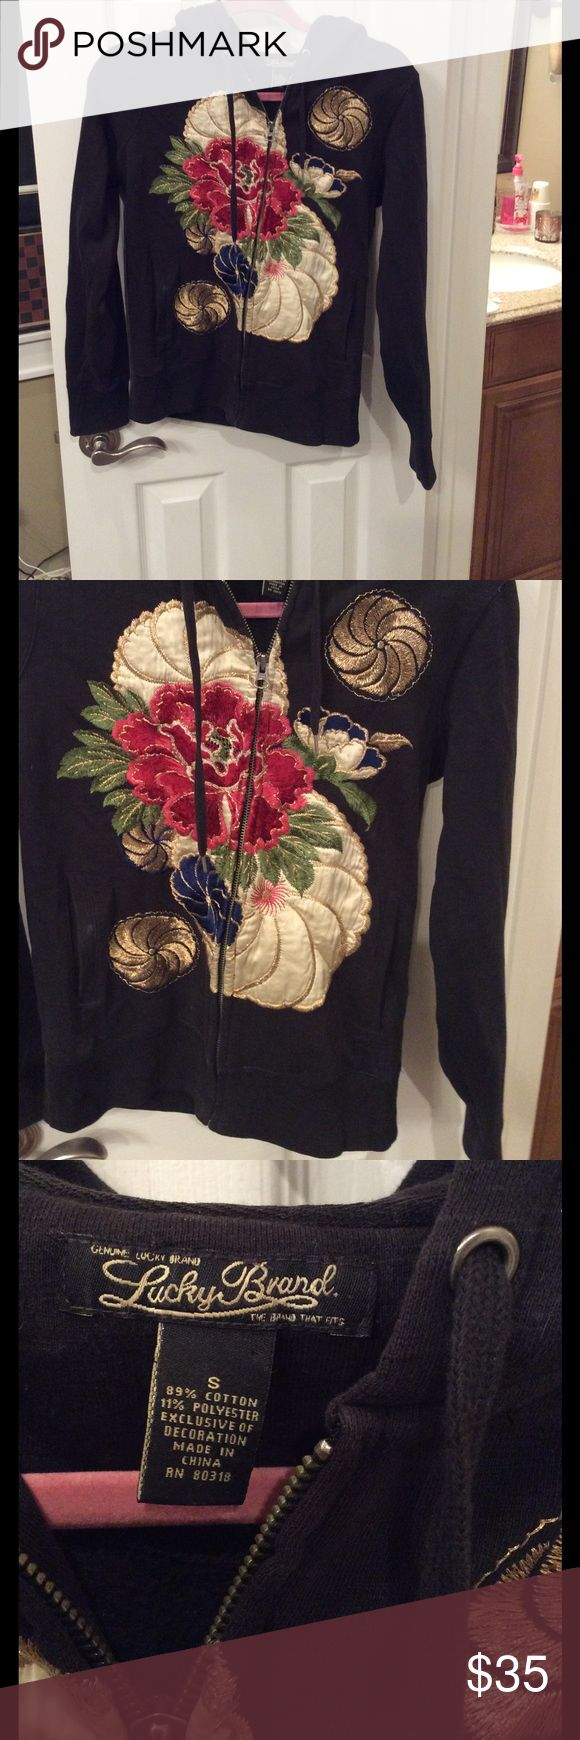 Lucky brand embroidered hoodie Beautiful floral embroidered hoodie. Satin and stitched floral design. Lucky Brand Tops Sweatshirts & Hoodies